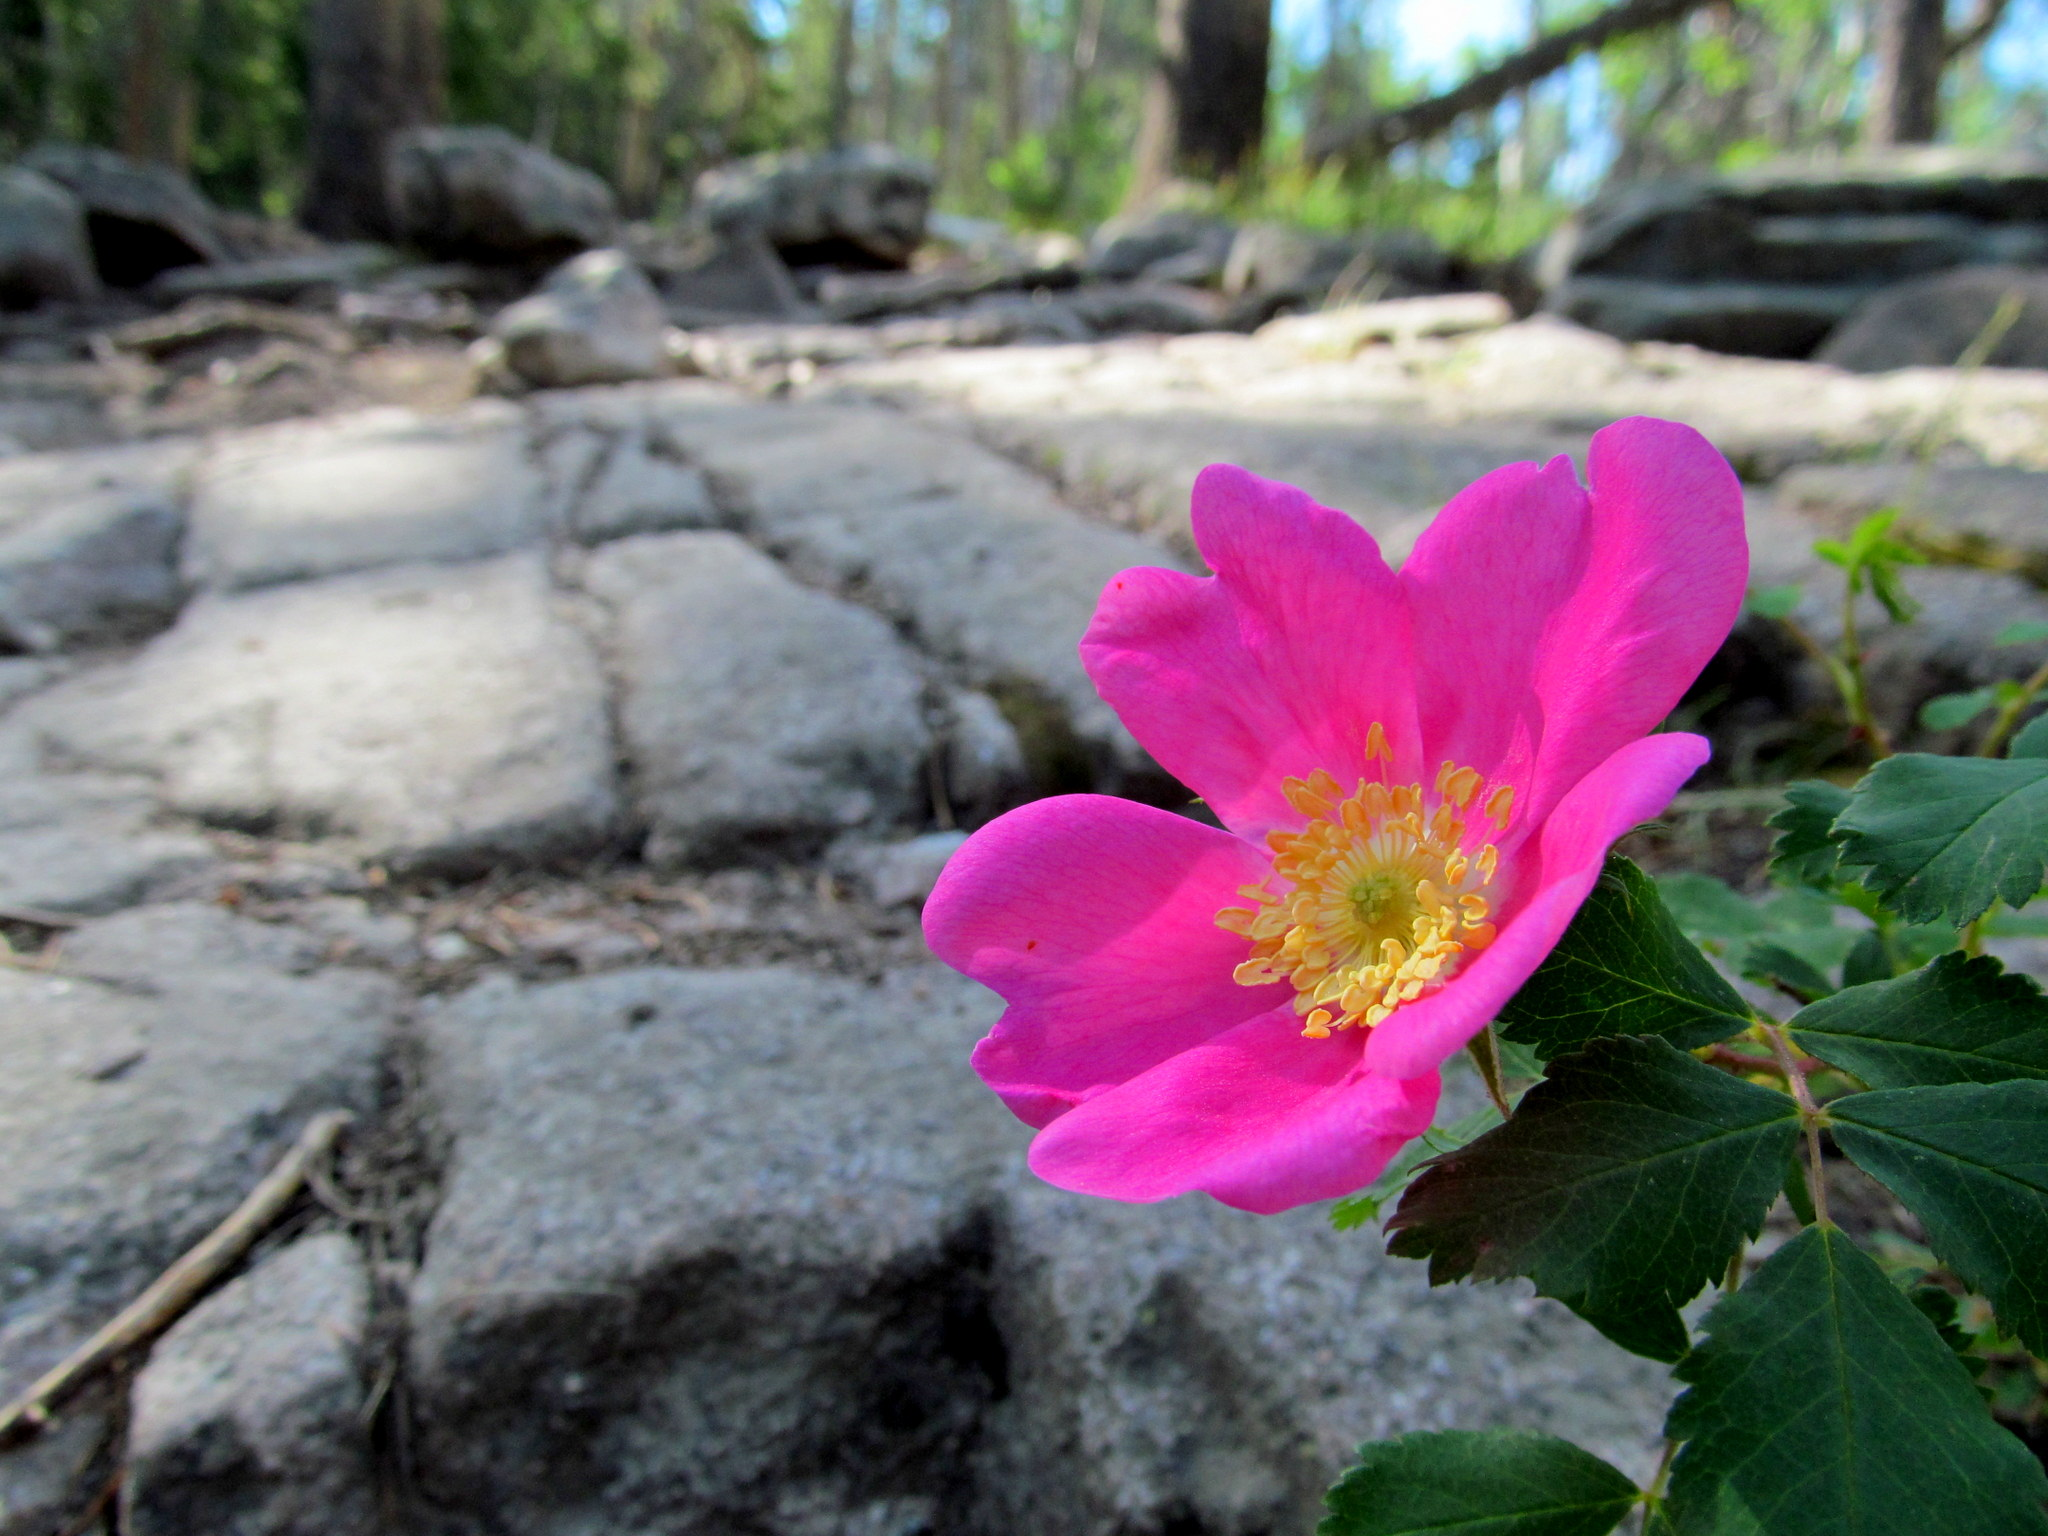 Photo: Wild rose alongside the trail